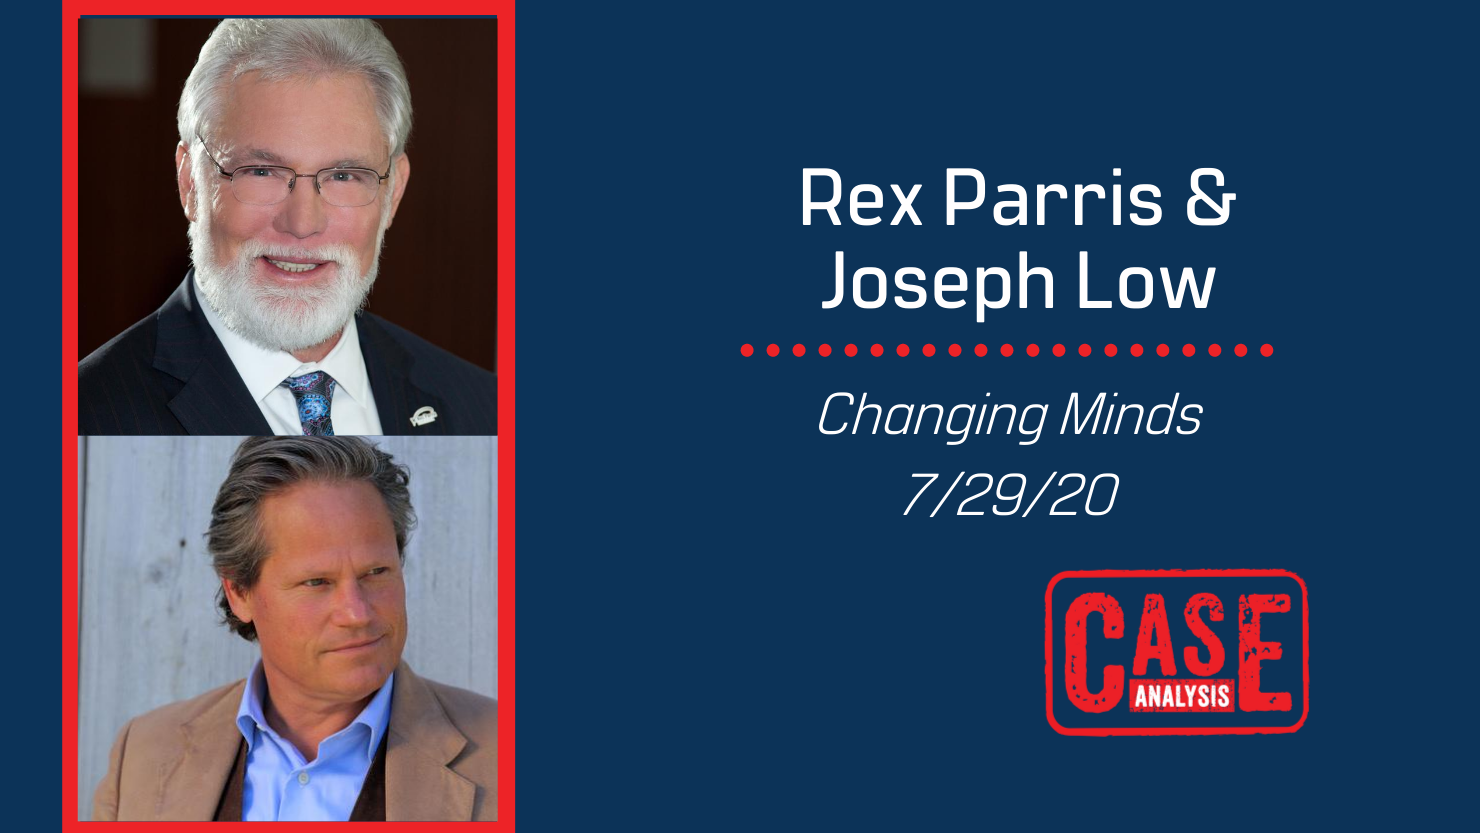 Rex Parris and Joseph Low on Changing Minds